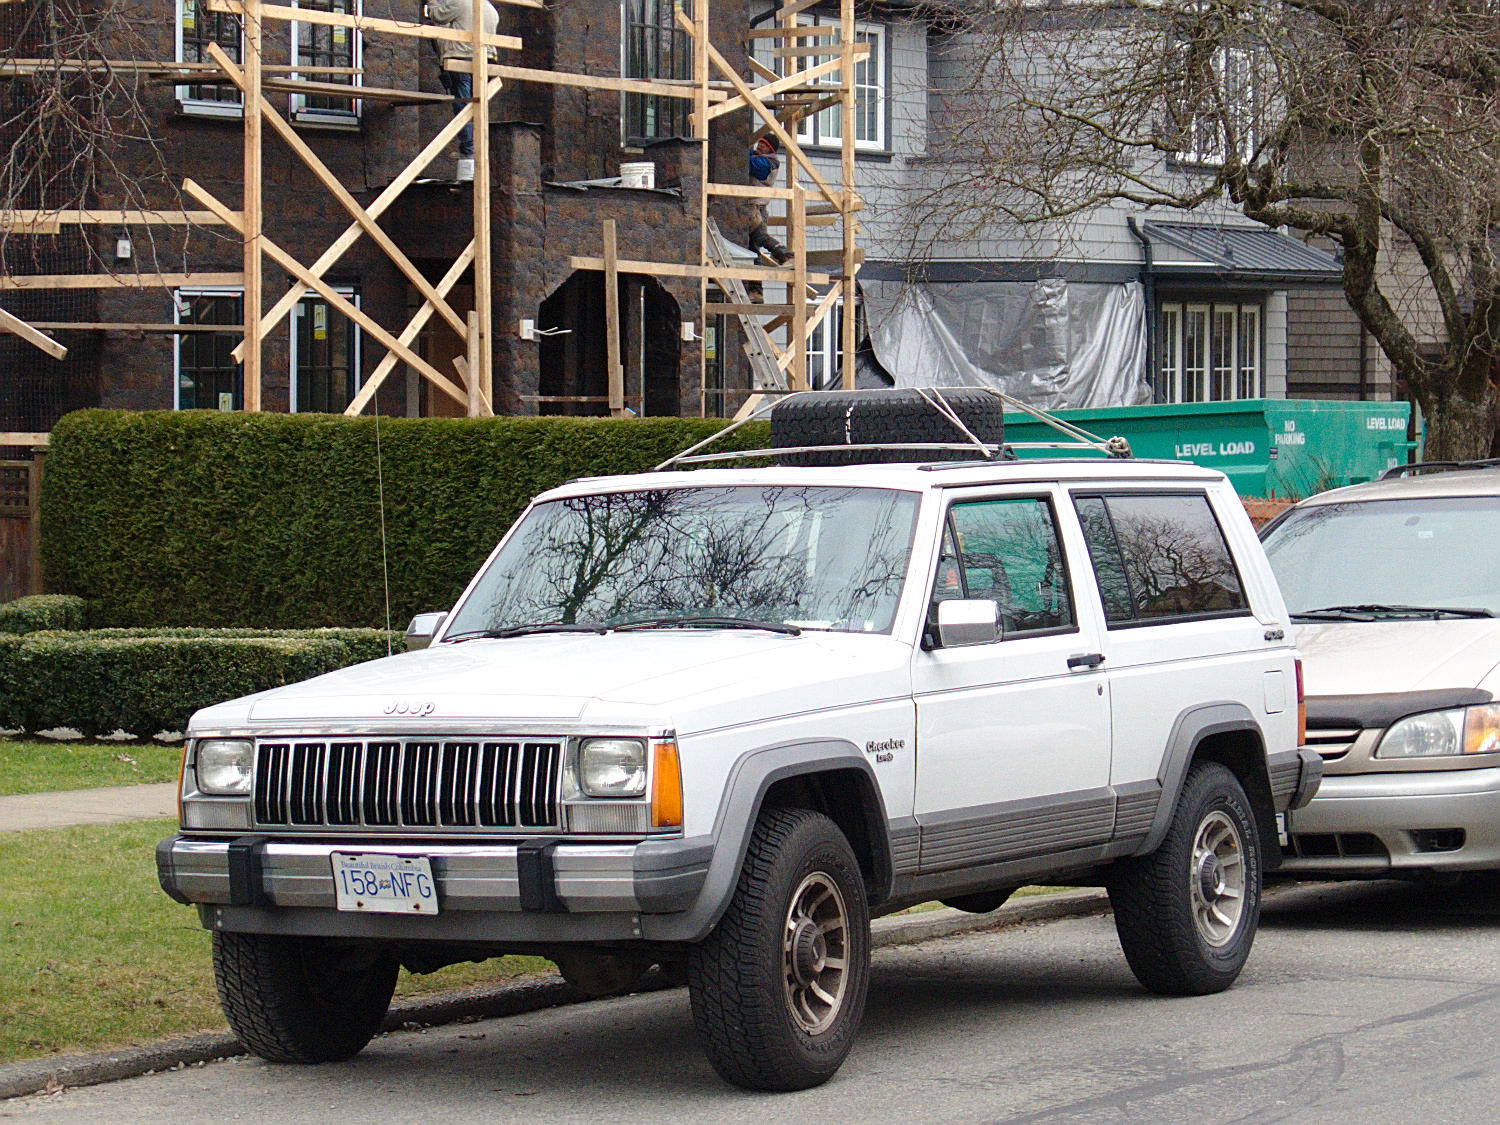 old parked cars vancouver 1990 jeep cherokee 2dr xj. Black Bedroom Furniture Sets. Home Design Ideas